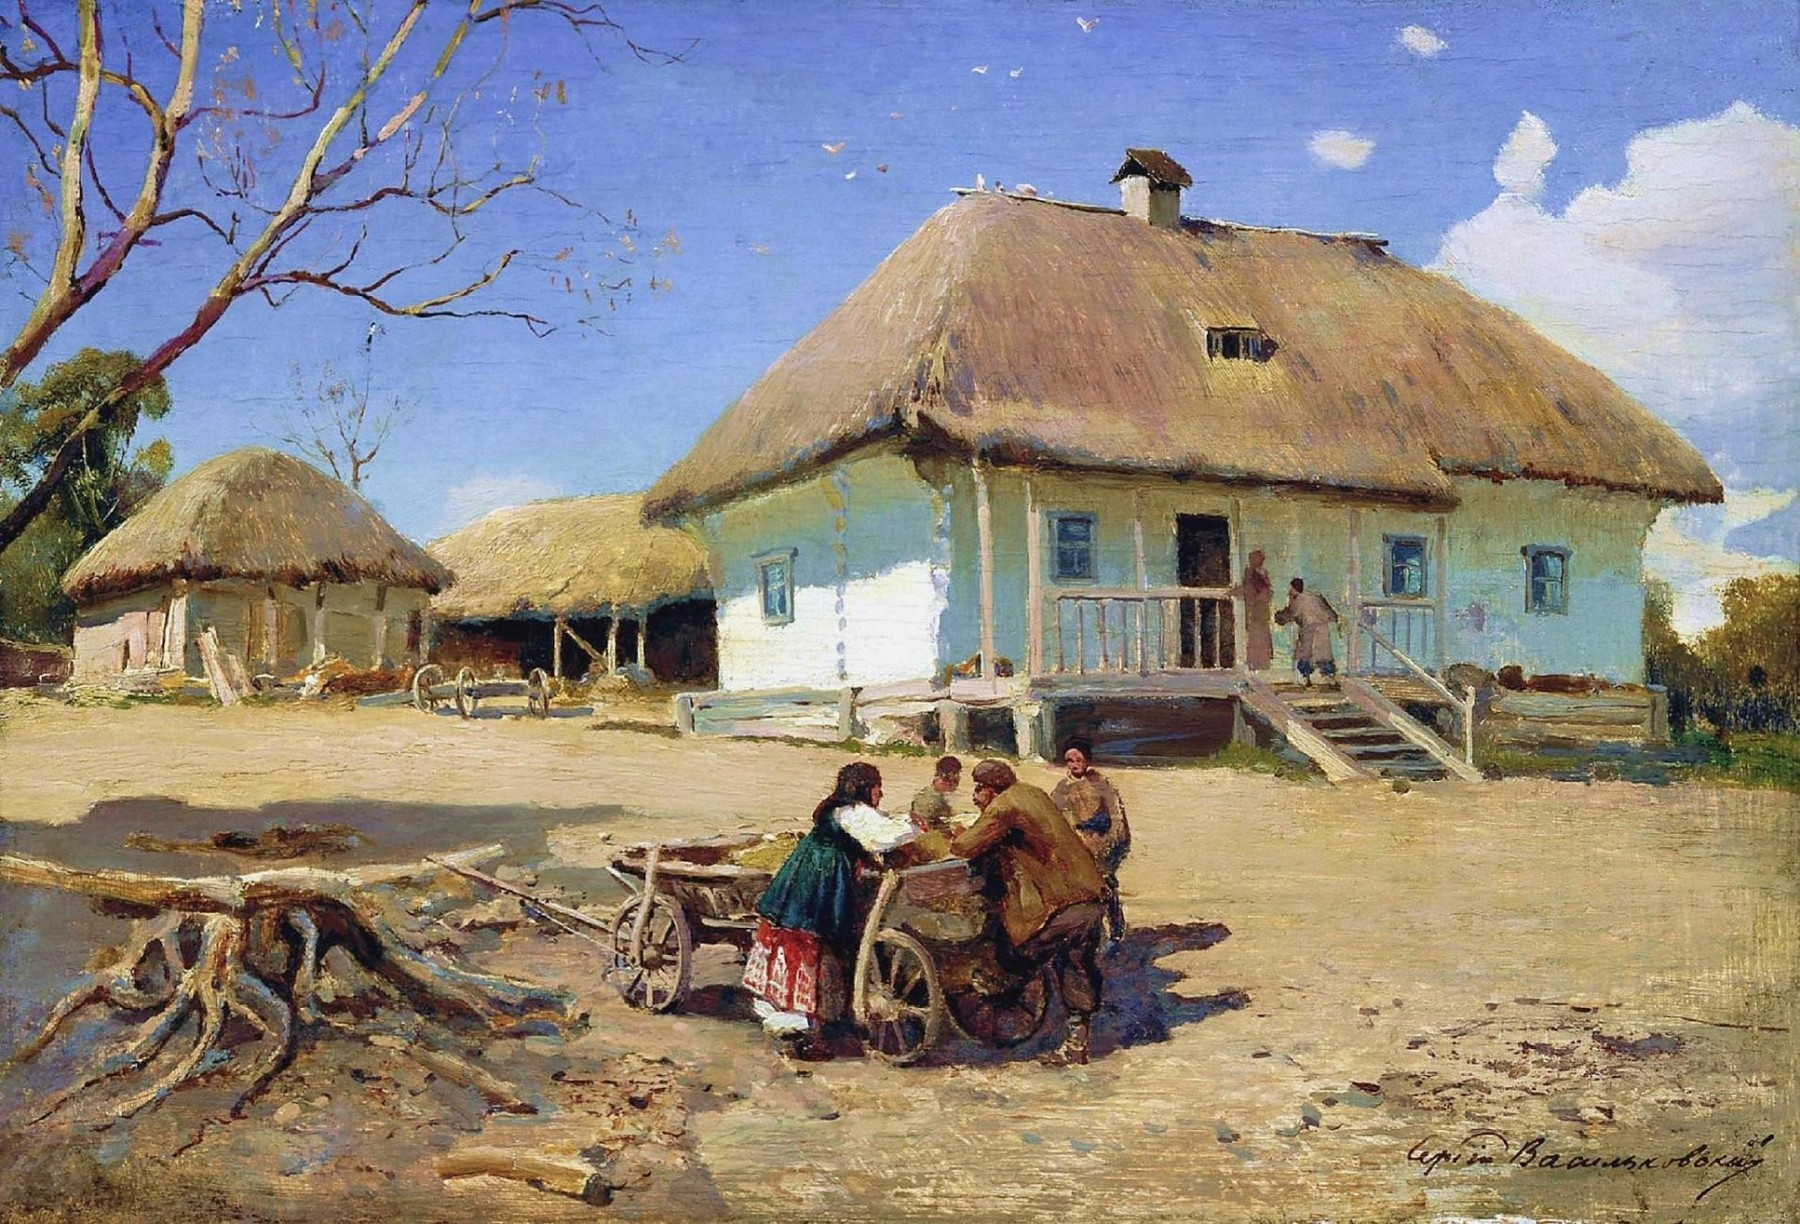 sergei vasilkovsky. a cossack village | art and faith